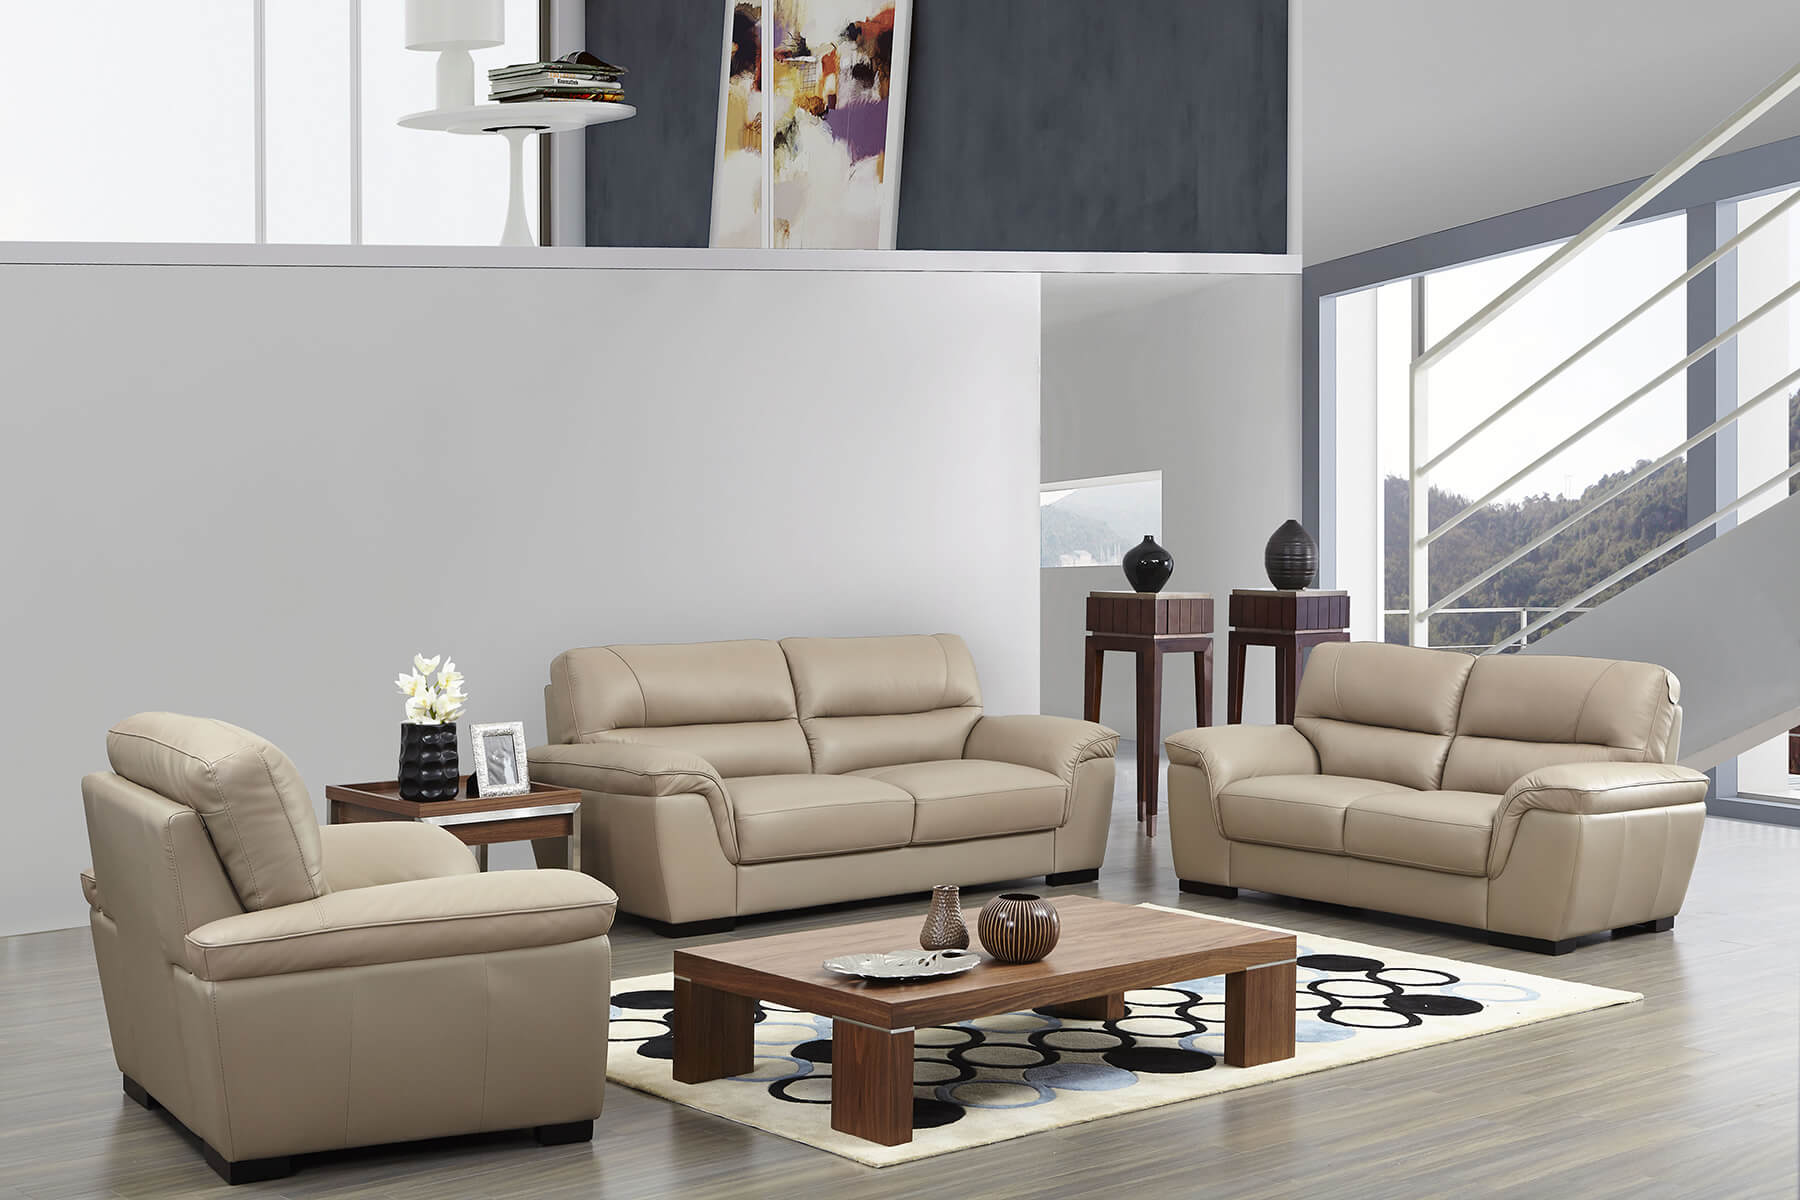 Modern italian leather sofa - As Shown On The Picture